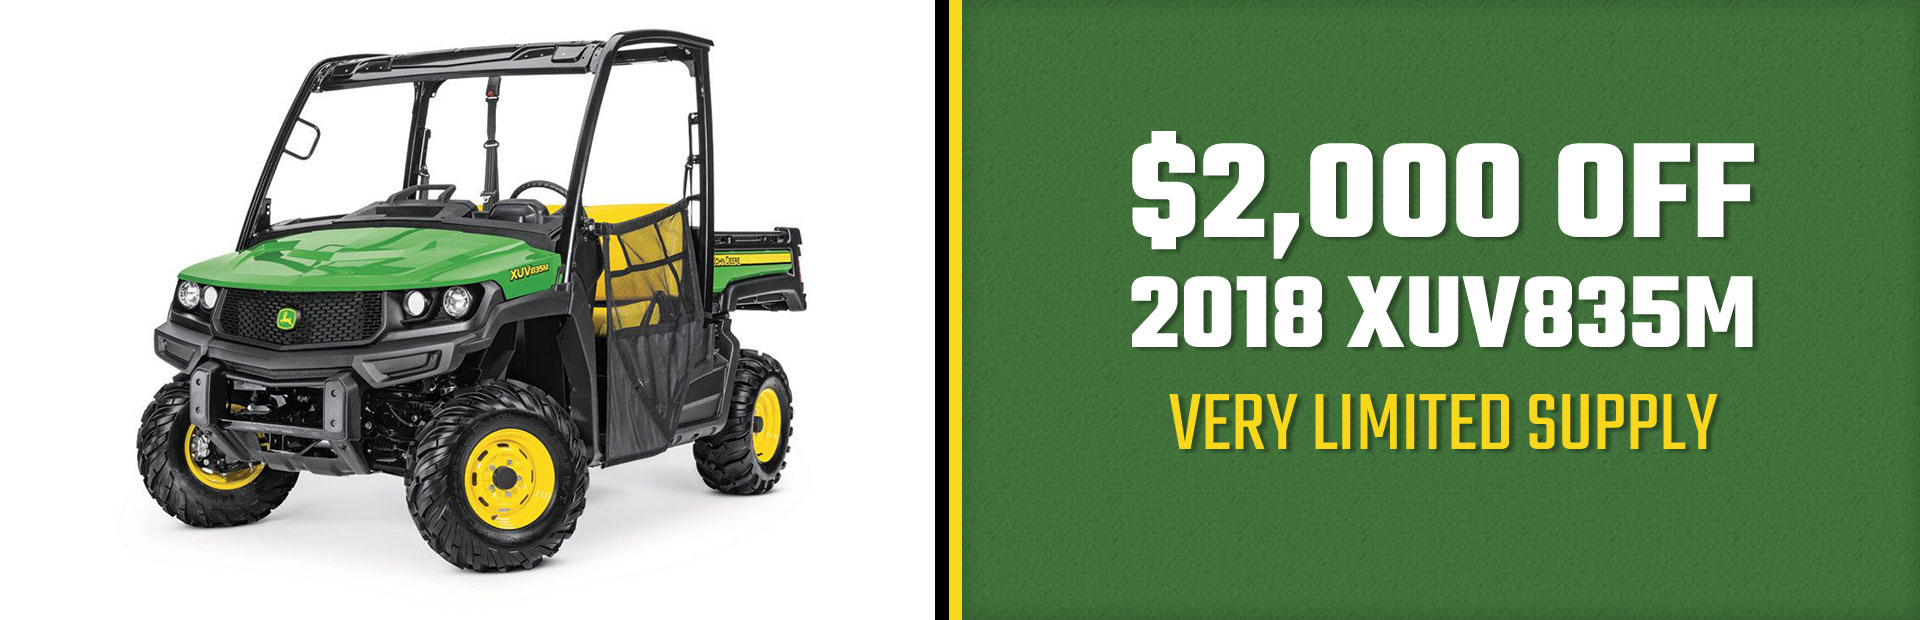 We're offering $2,000 off for 2018 John Deere XUV835M!